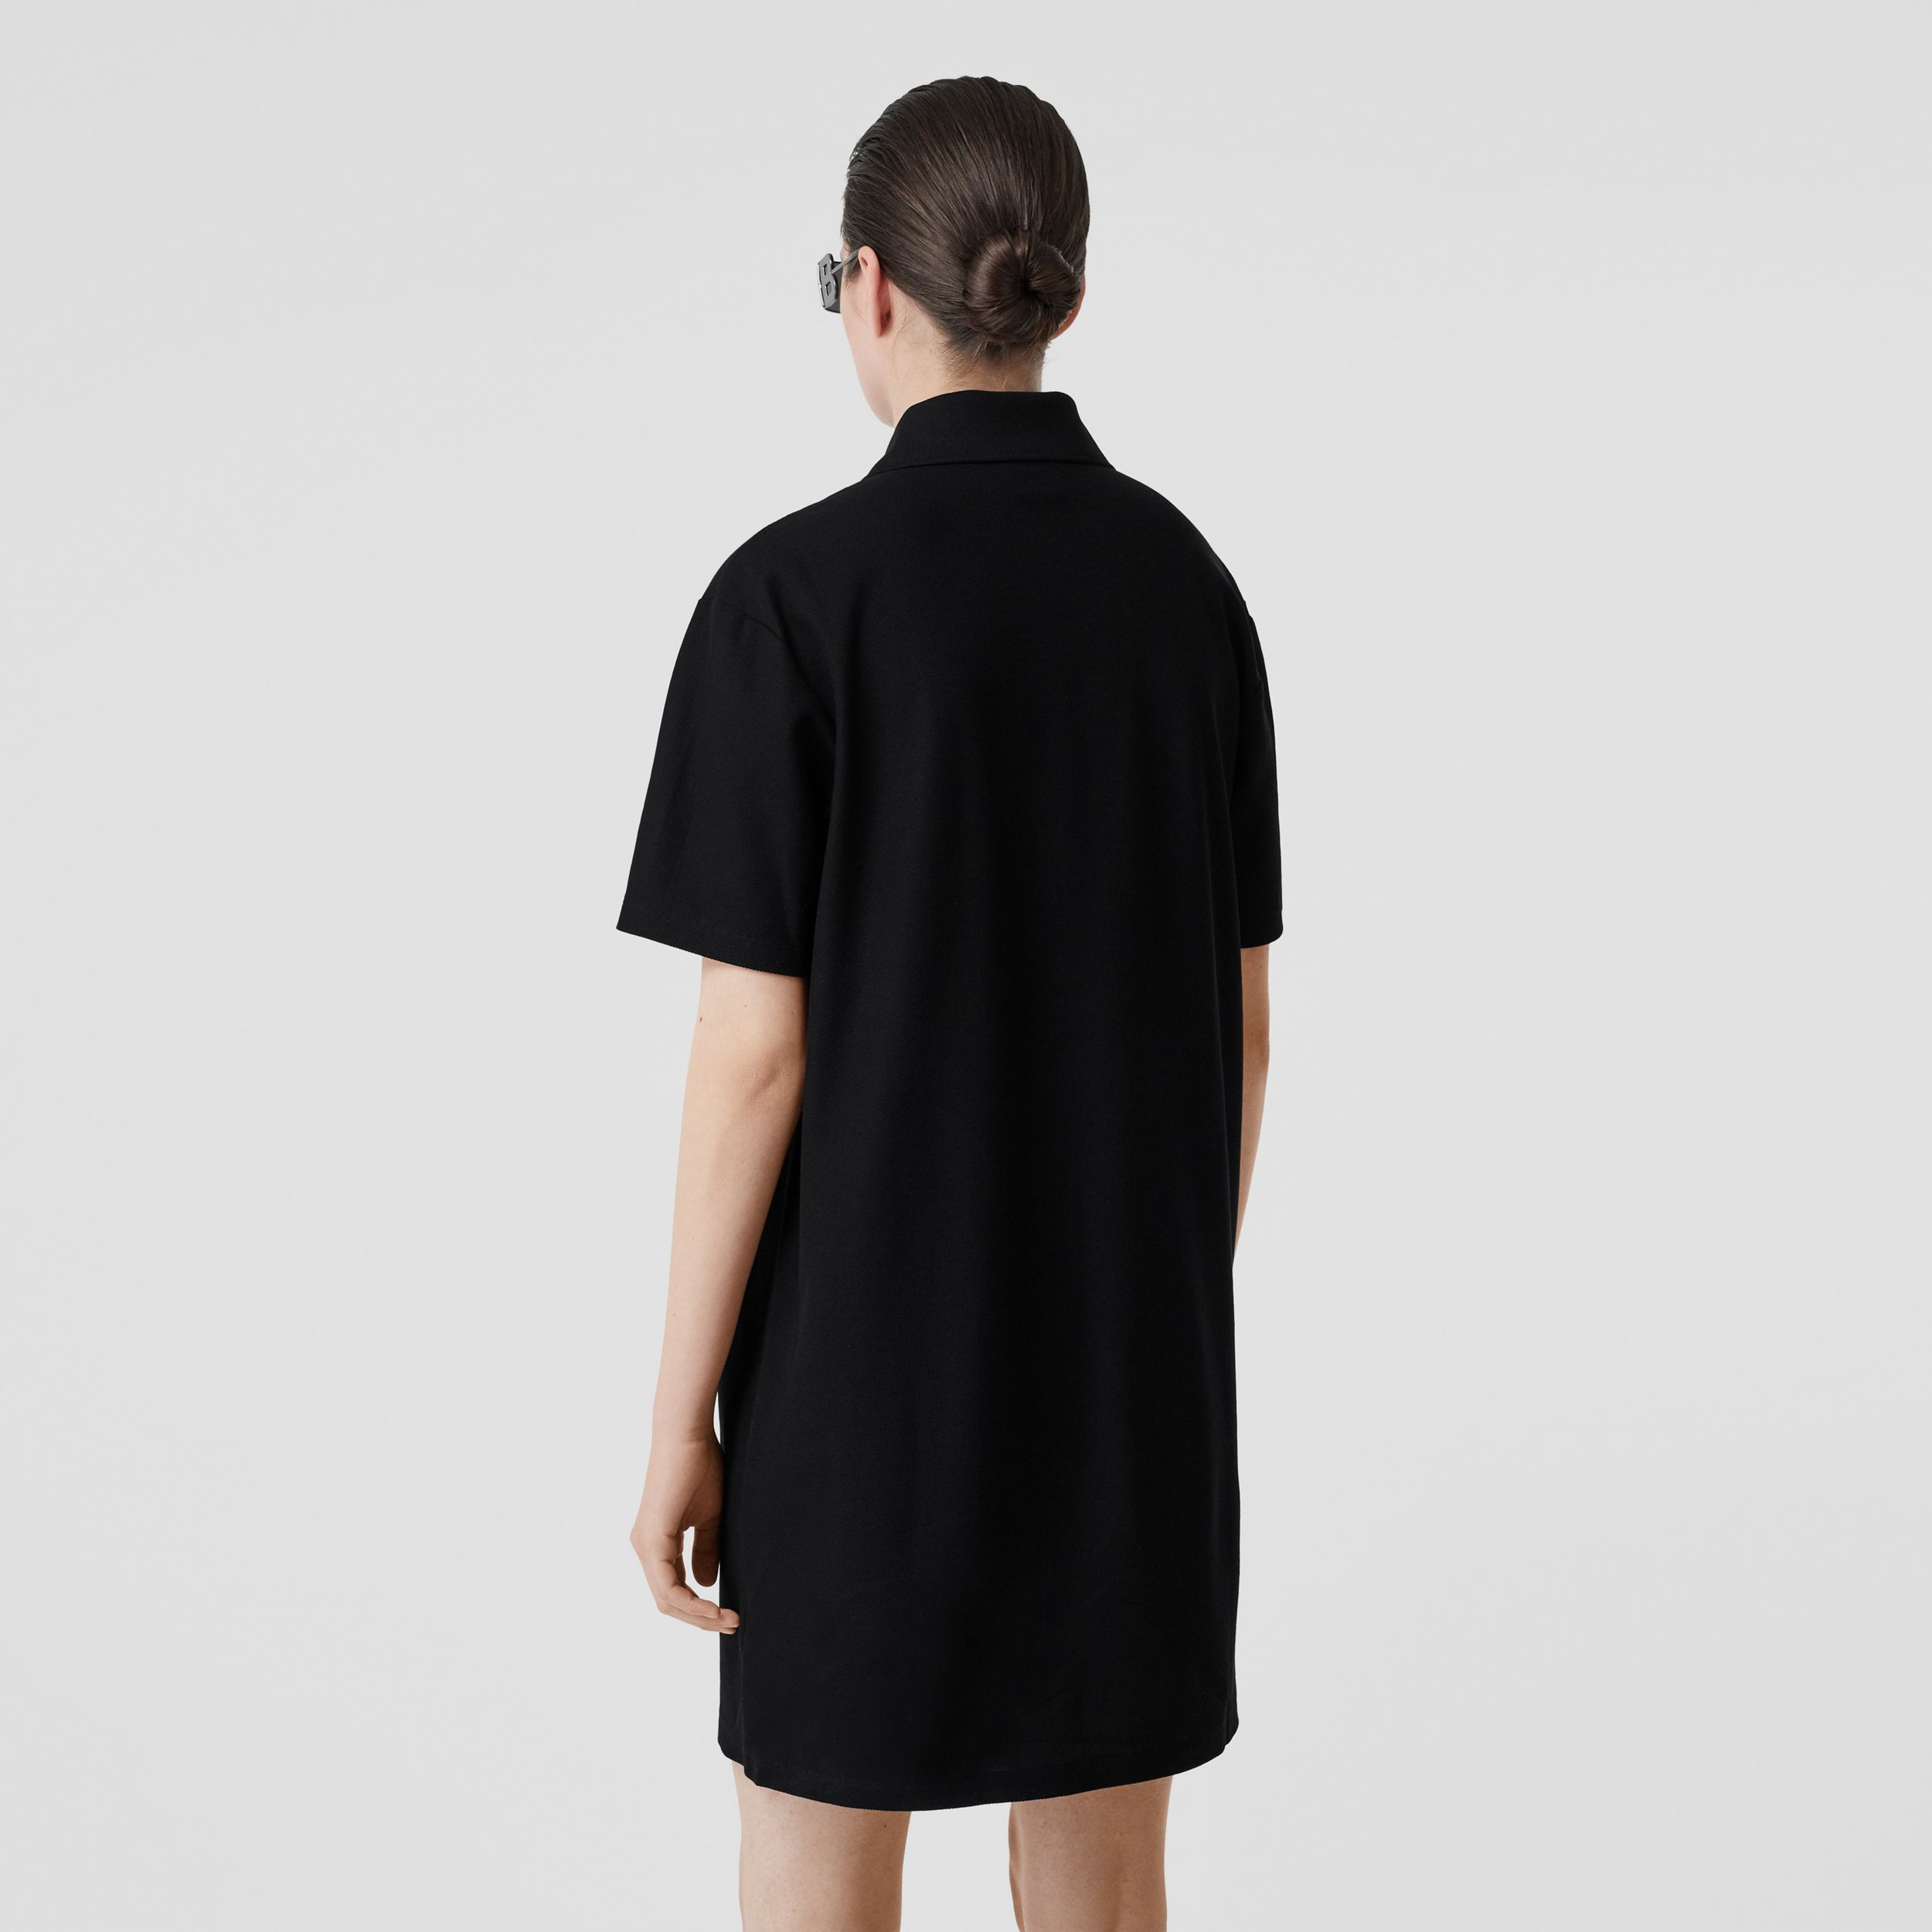 Logo Graphic Cotton Piqué Dress in Black - Women | Burberry - 3